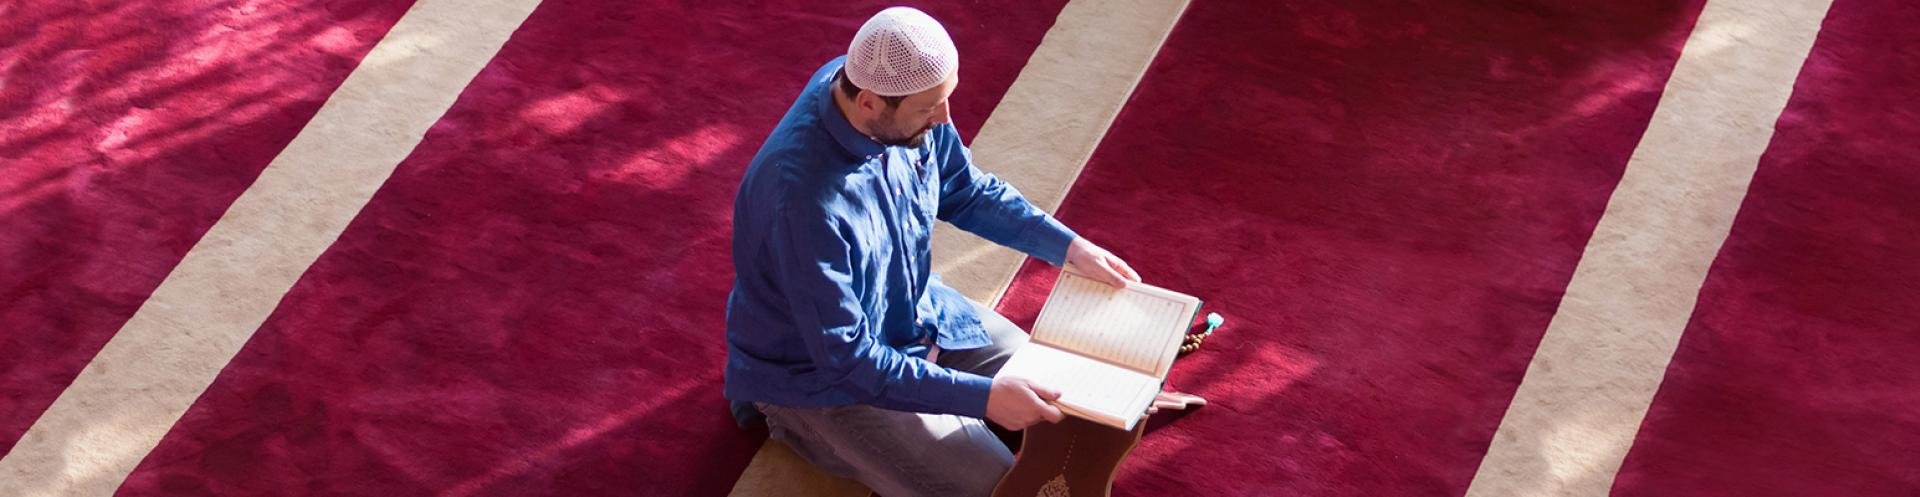 The Methodology of Reading Hadith: The Thematic Classification as a Way of Framing Sunnah Comprehension